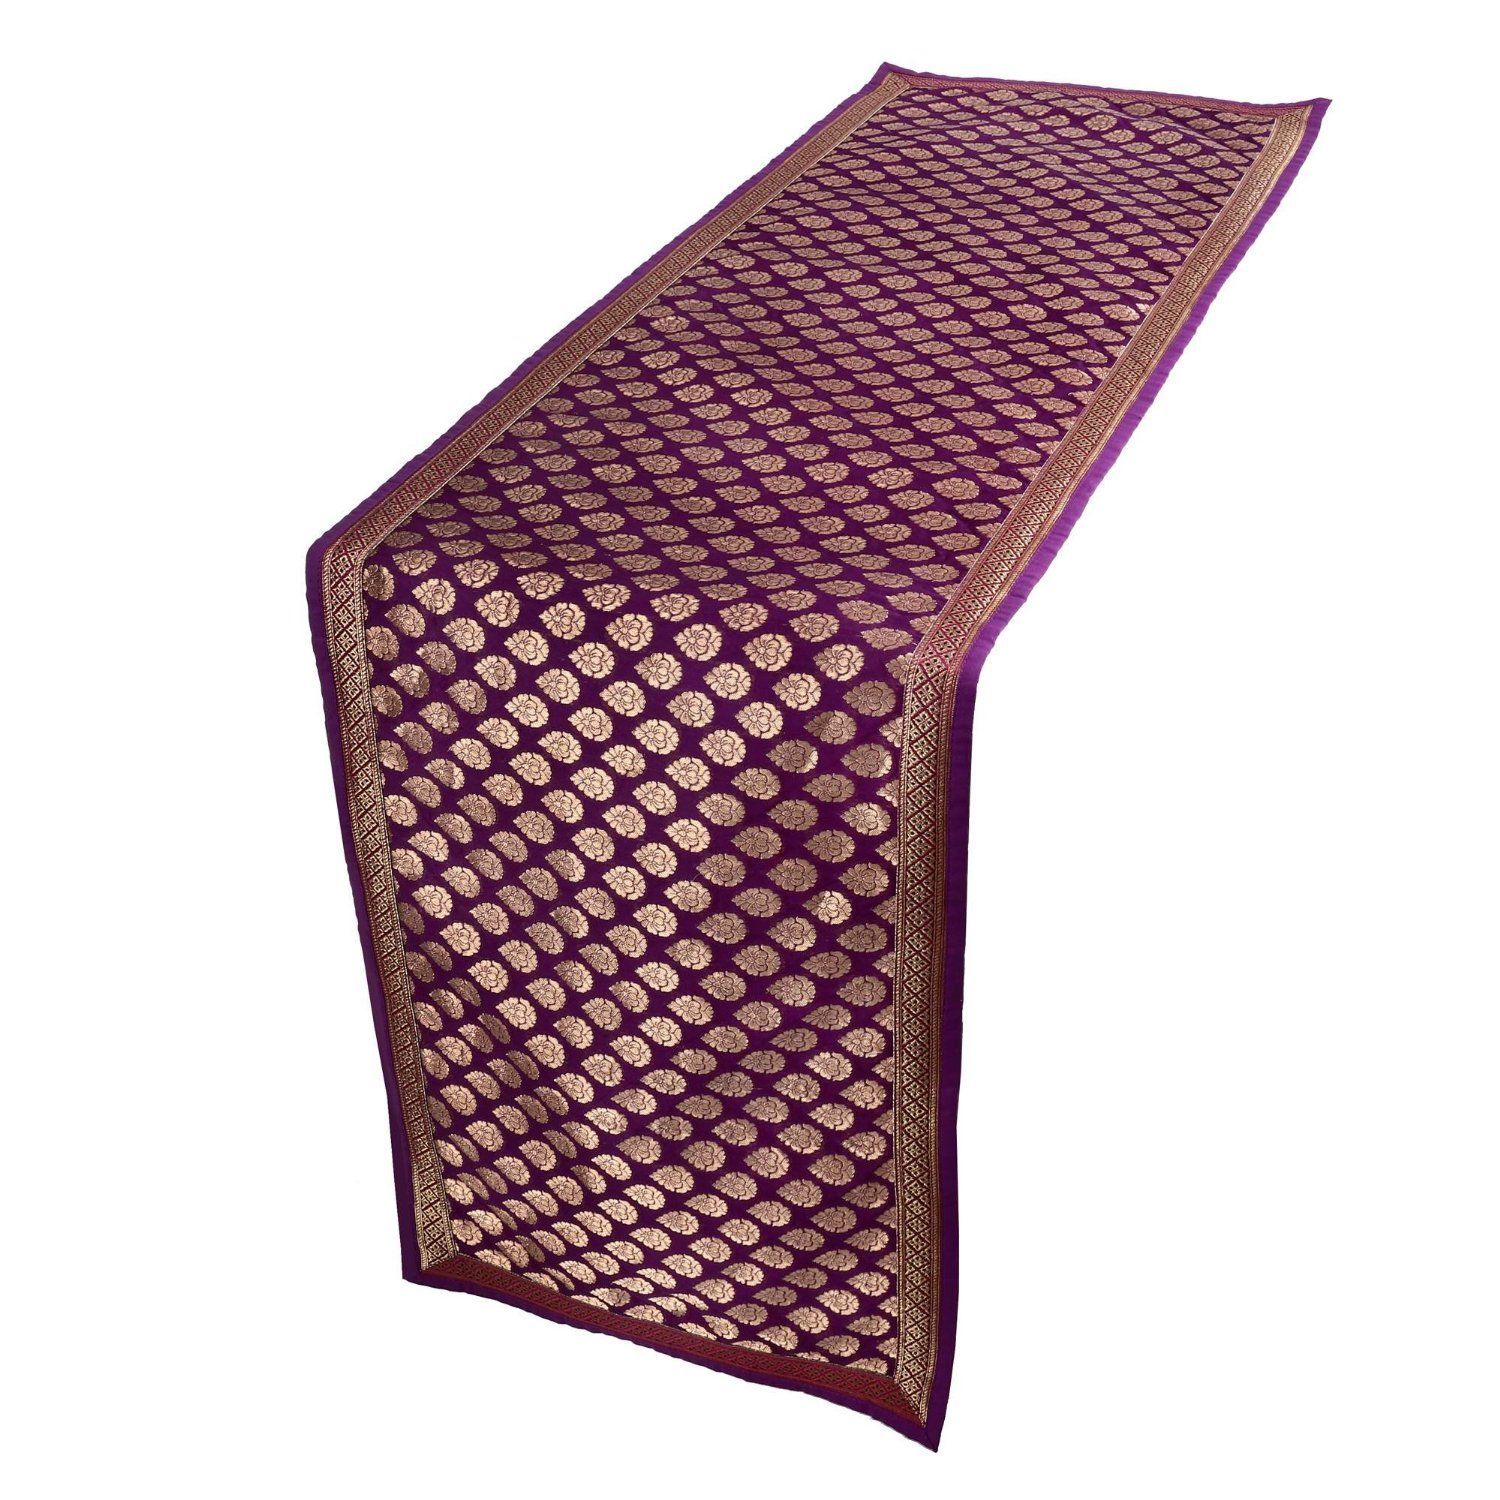 Brocade Silk Purple And Gold Table Runner Home Décor Indian: Amazon.co.uk